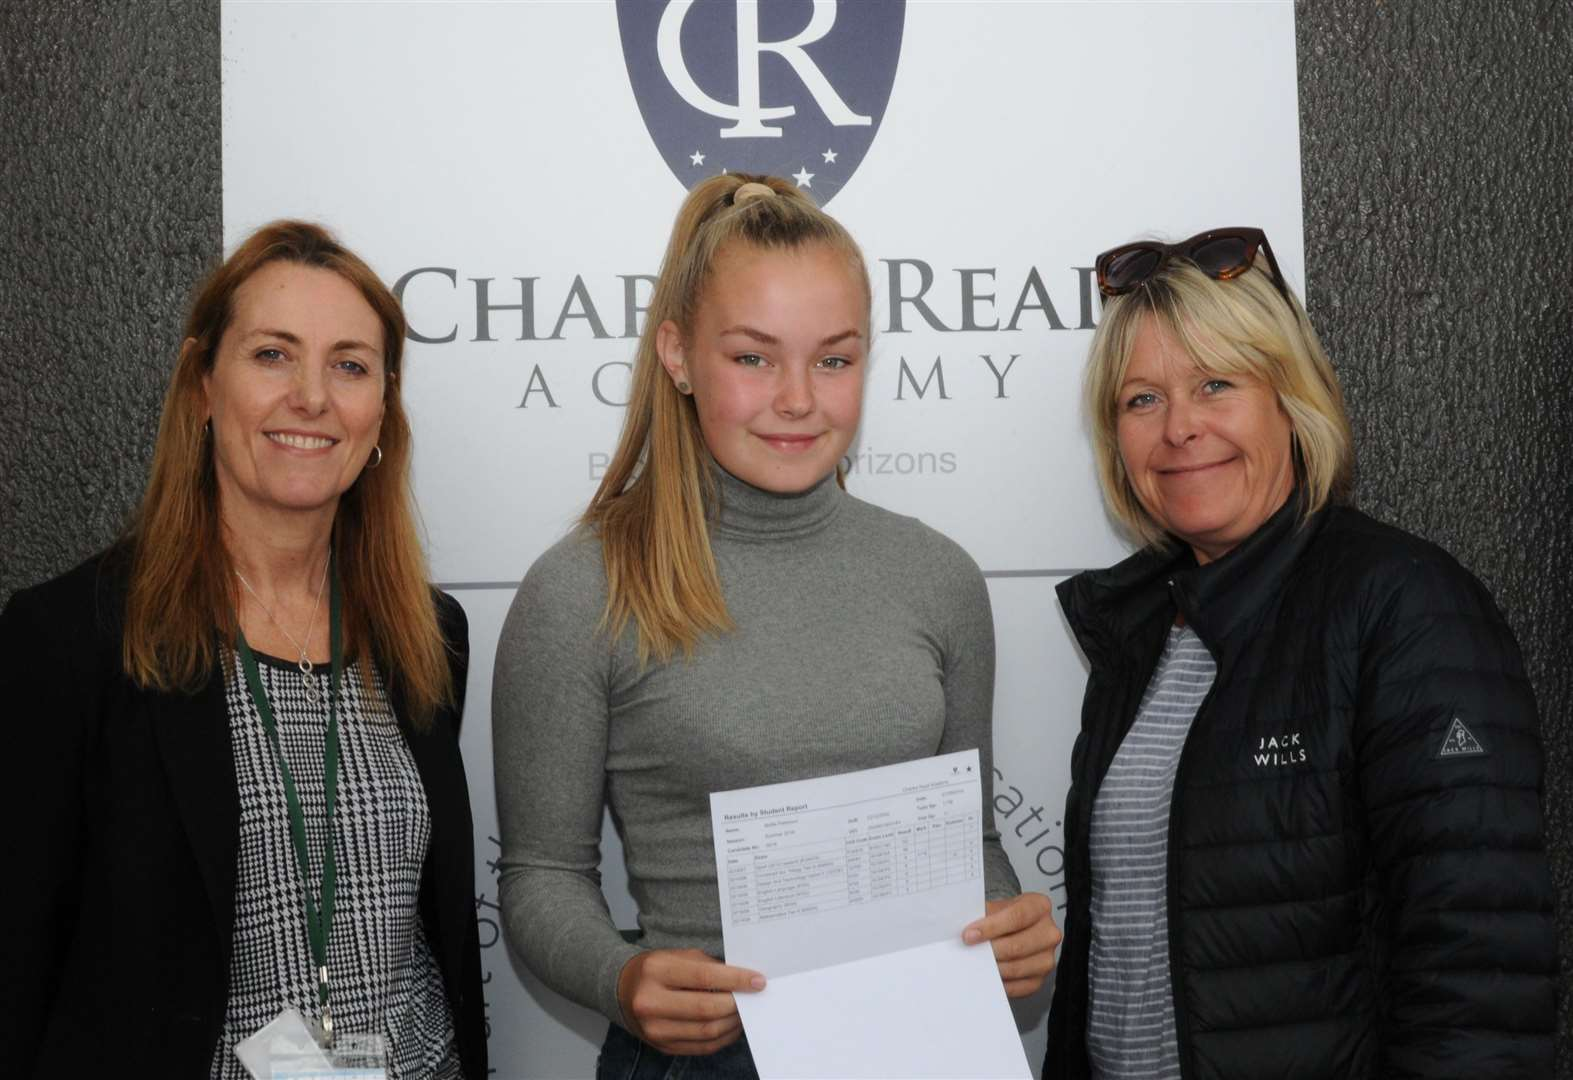 GCSE results day 2019: Charles Read Academy